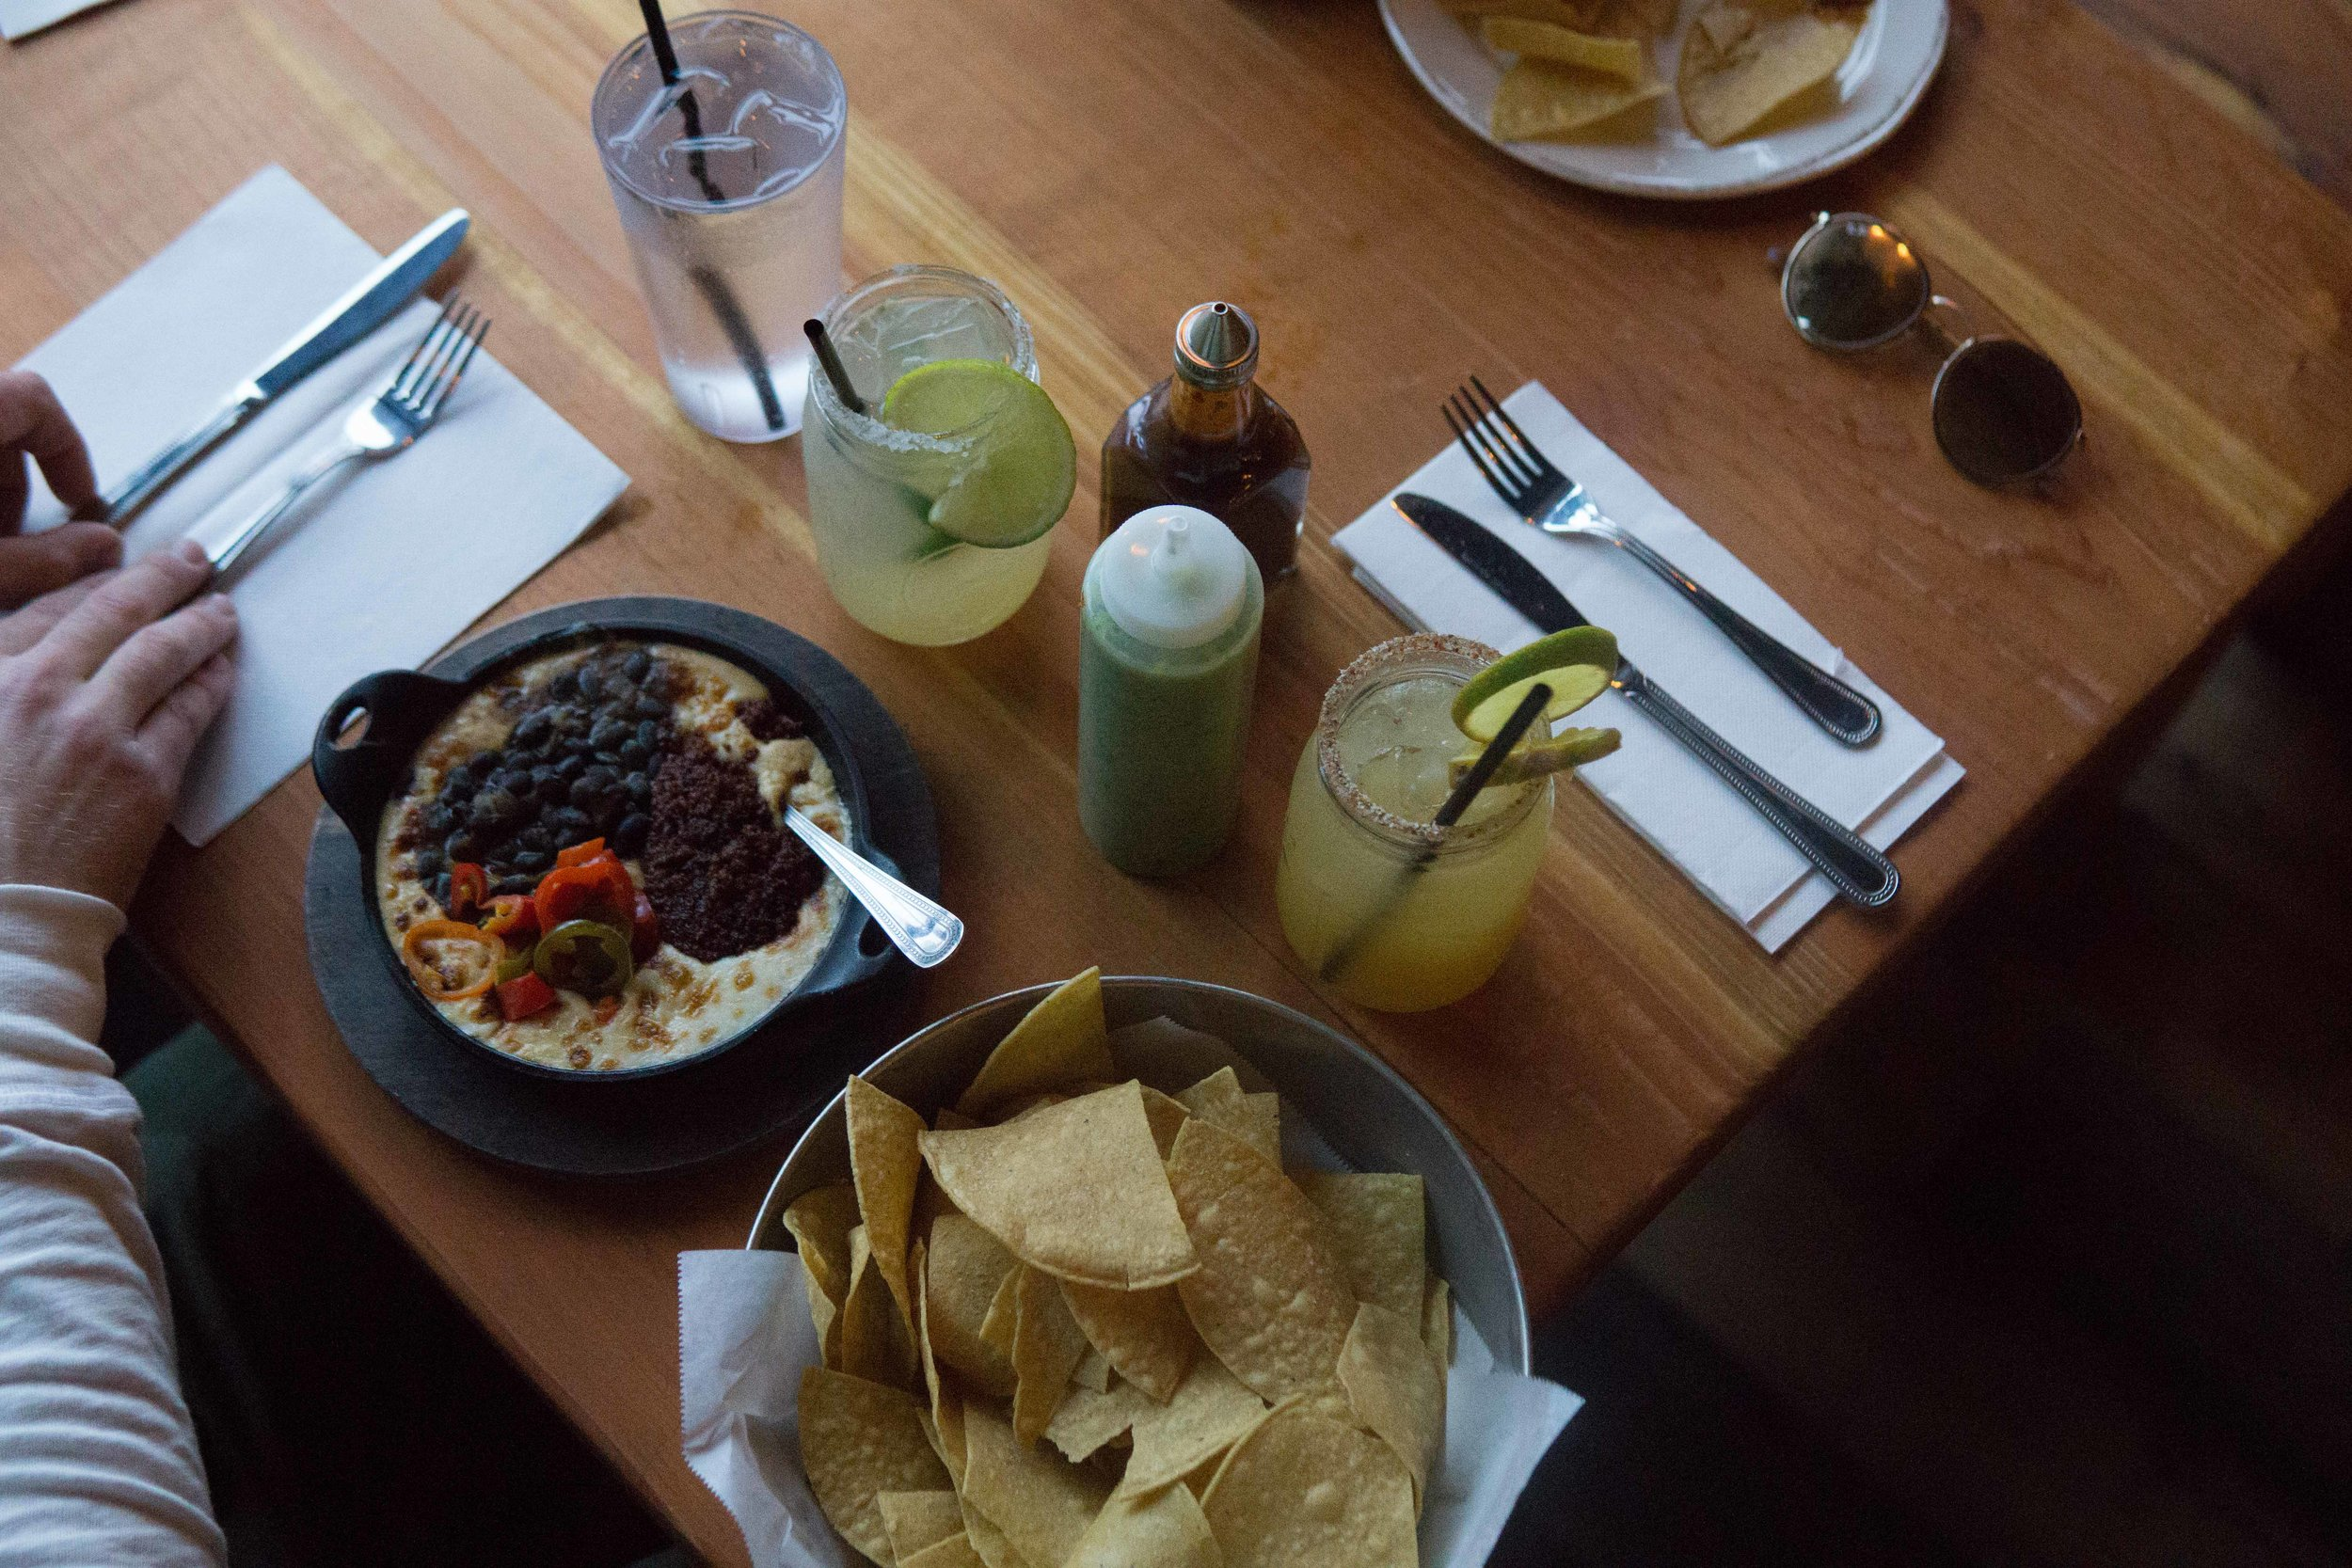 Chips and queso loaded with every accompaniment they offer. Best washed down with the Bakersfield Marg (spicy).